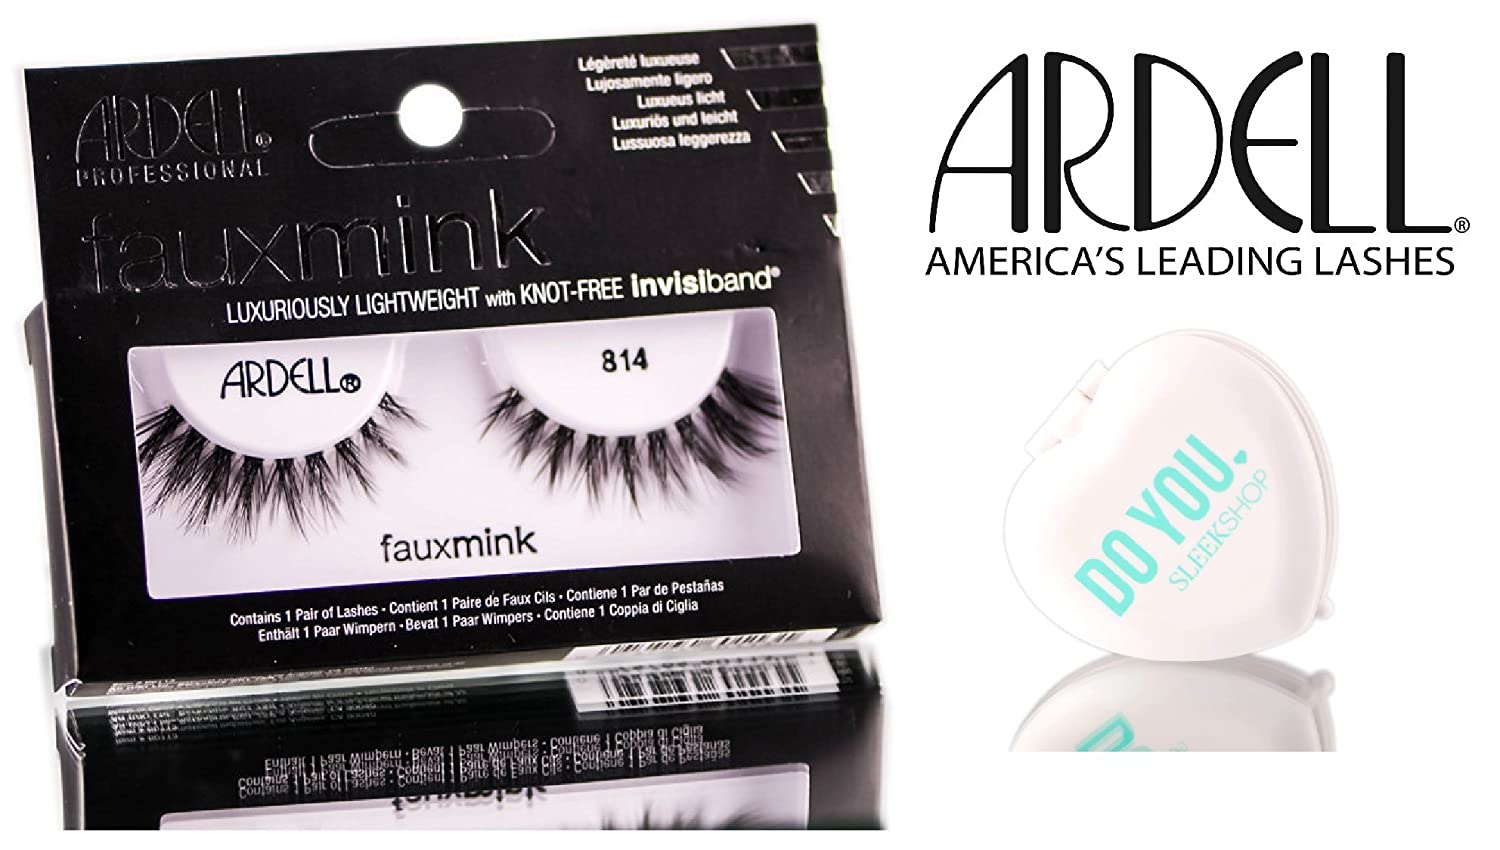 0689a284ace Amazon.com : Ardell Professional Faux Mink Designer Lash Collection (with  Sleek Compact Mirror) (Demi Wispies) : Beauty